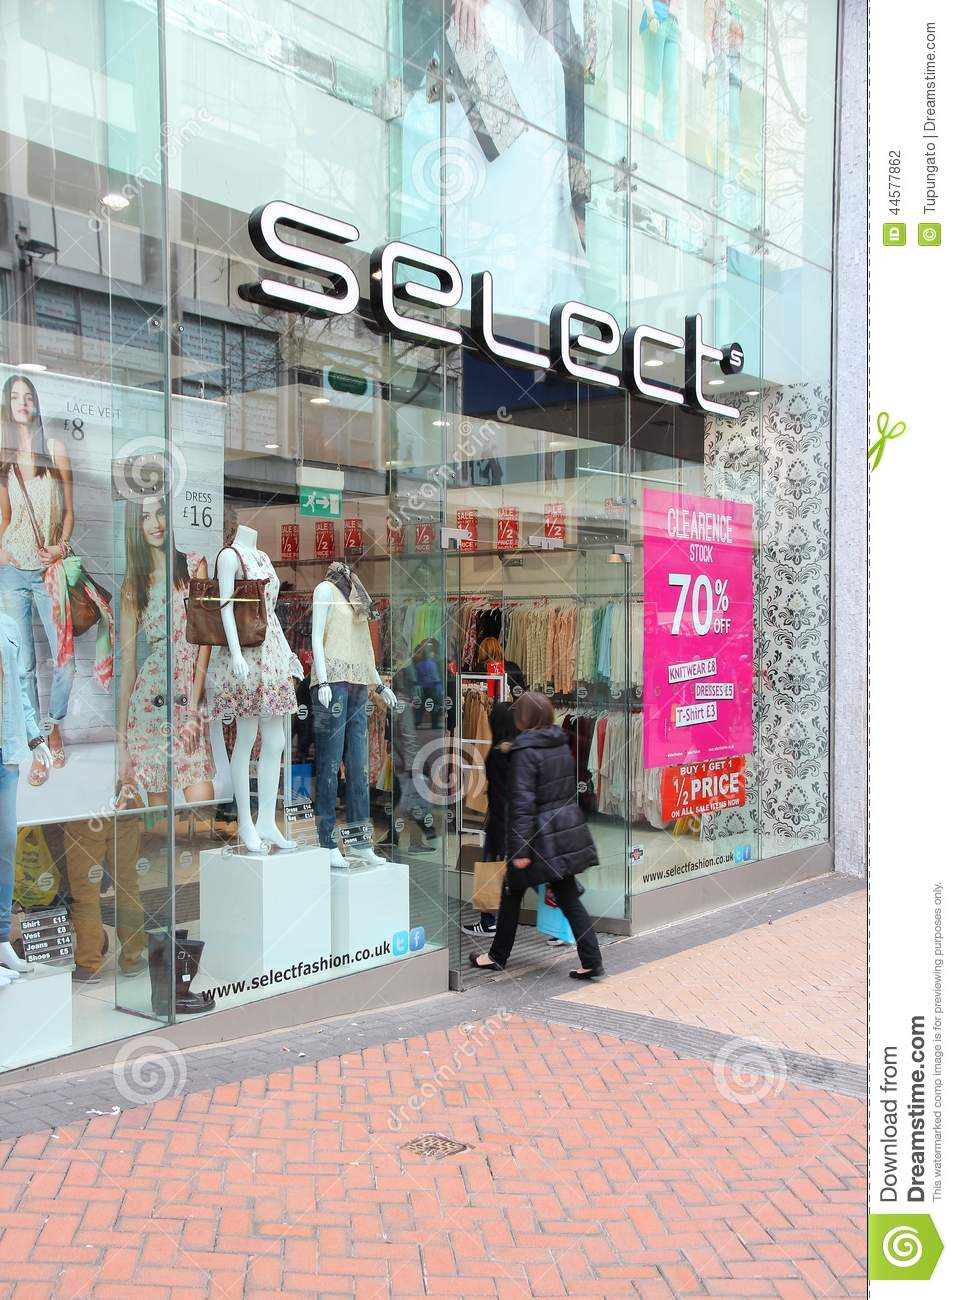 Select has 154 women's clothes stores in the United Kingdom (2014